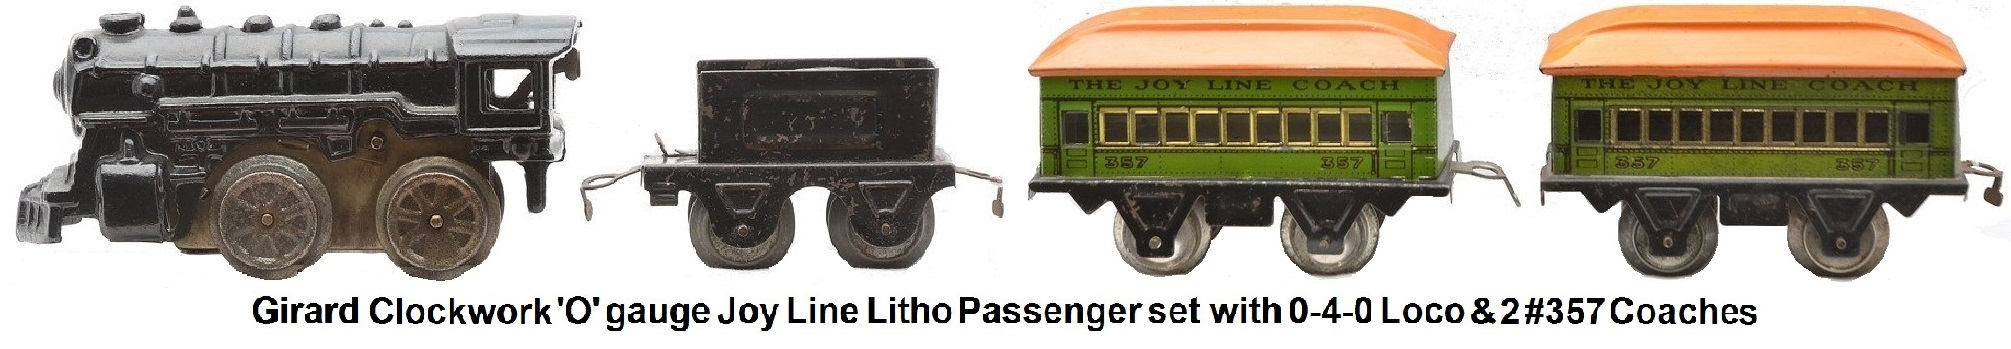 Joy Line 'O' gauge tinplate lithographed pasenger set with 0-4-0 cast loco, tender and two #357 Pullman coaches